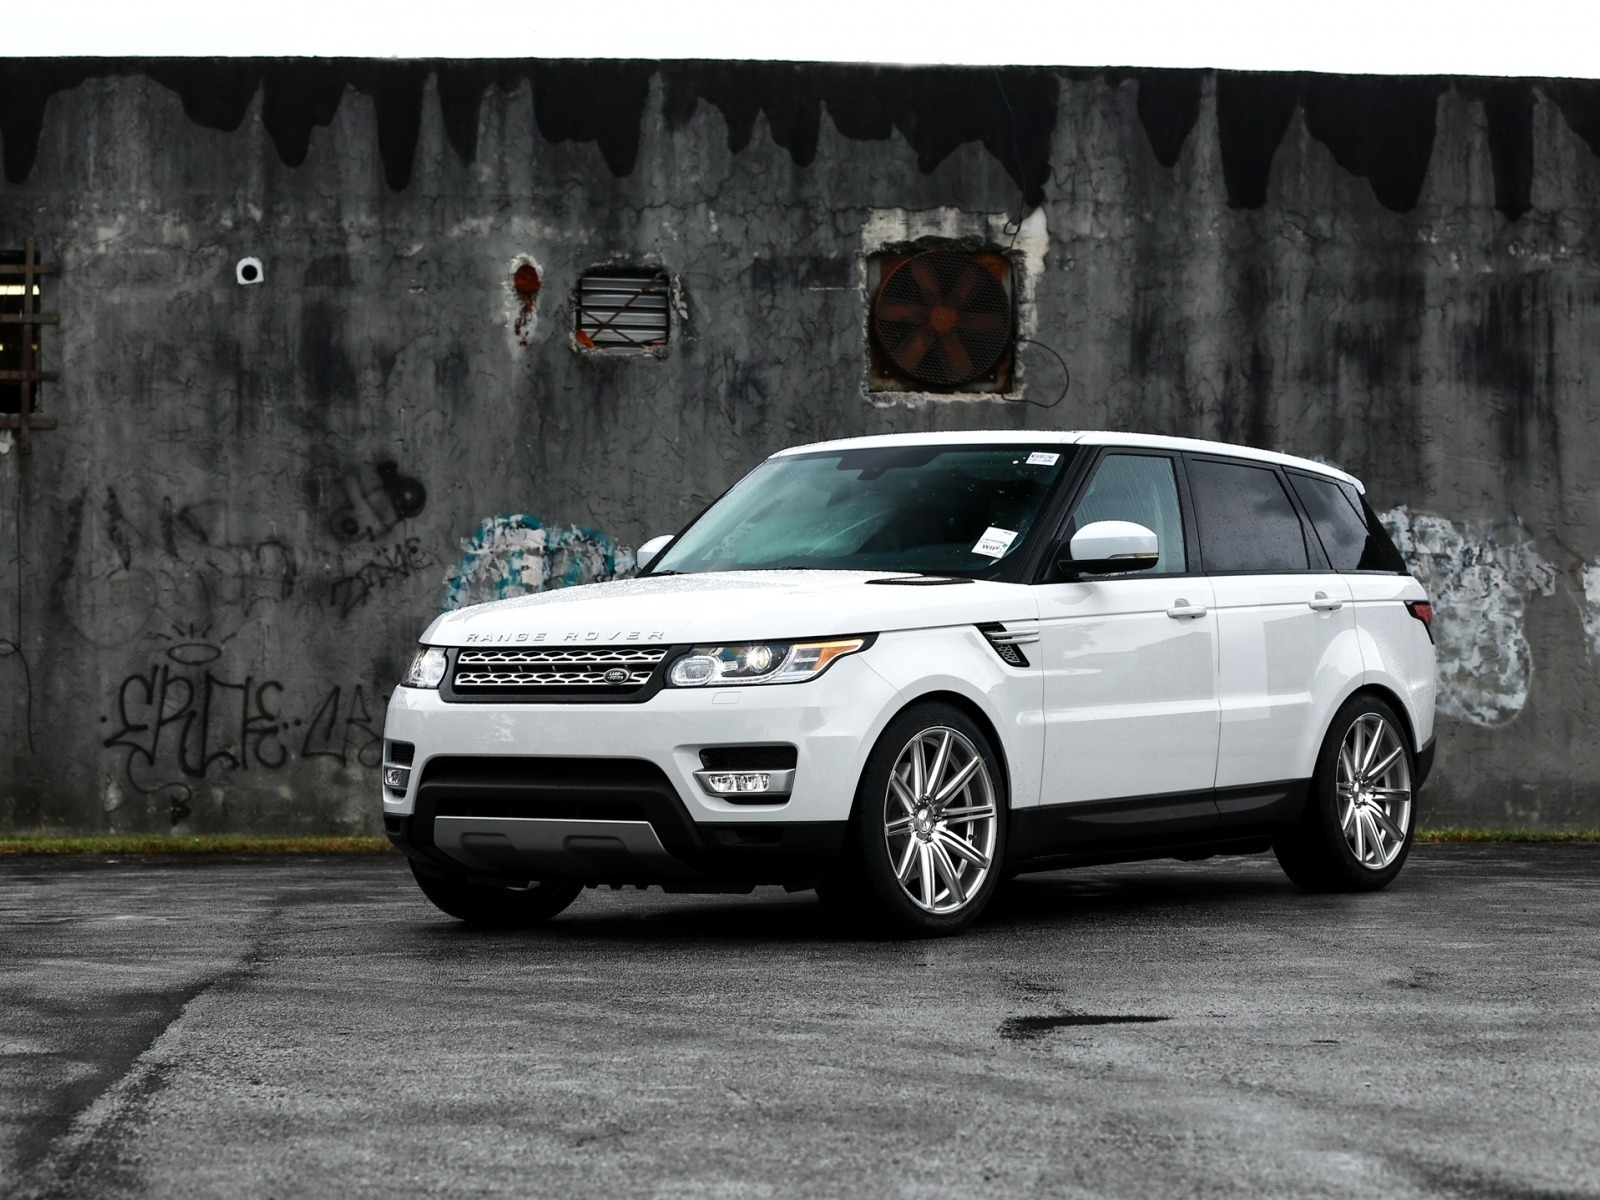 Gorgeous White Range Rover Sport for 1600 x 1200 resolution